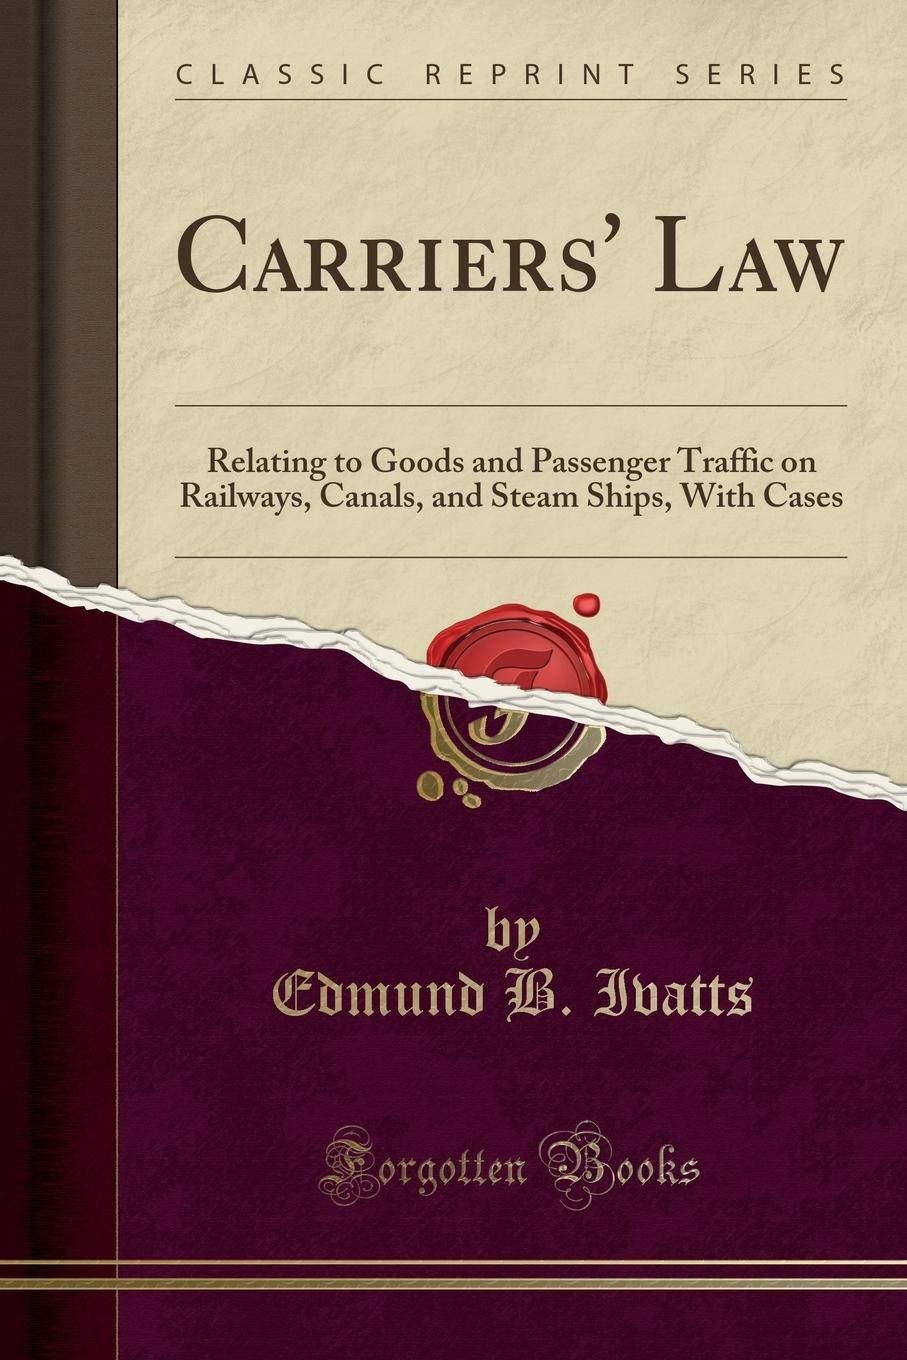 Read Online Carriers' Law: Relating to Goods and Passenger Traffic on Railways, Canals, and Steam Ships, With Cases (Classic Reprint) PDF